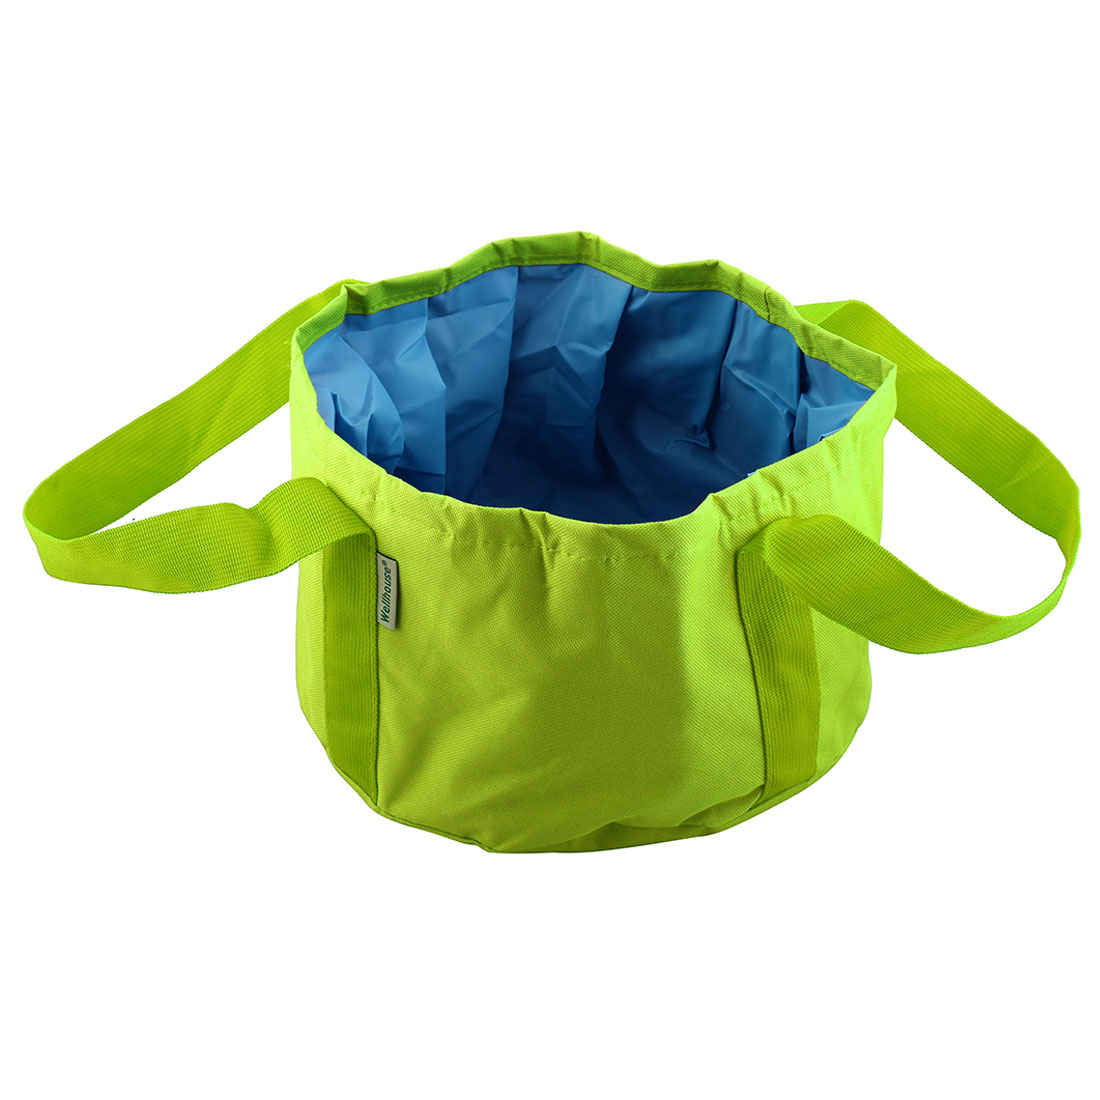 Wellhouse Authorized Folded Washbasin Washbowl Camping Bucket Green L